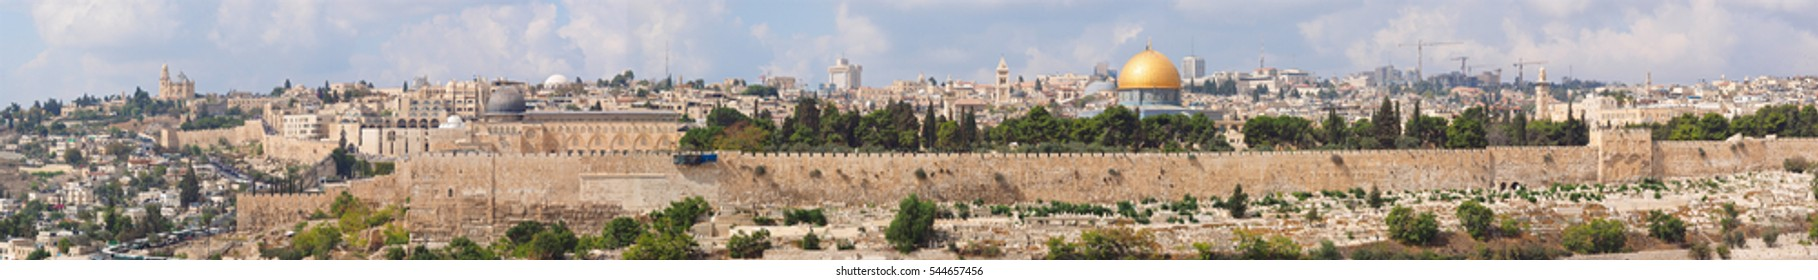 Jerusalem old city panorama,Israel